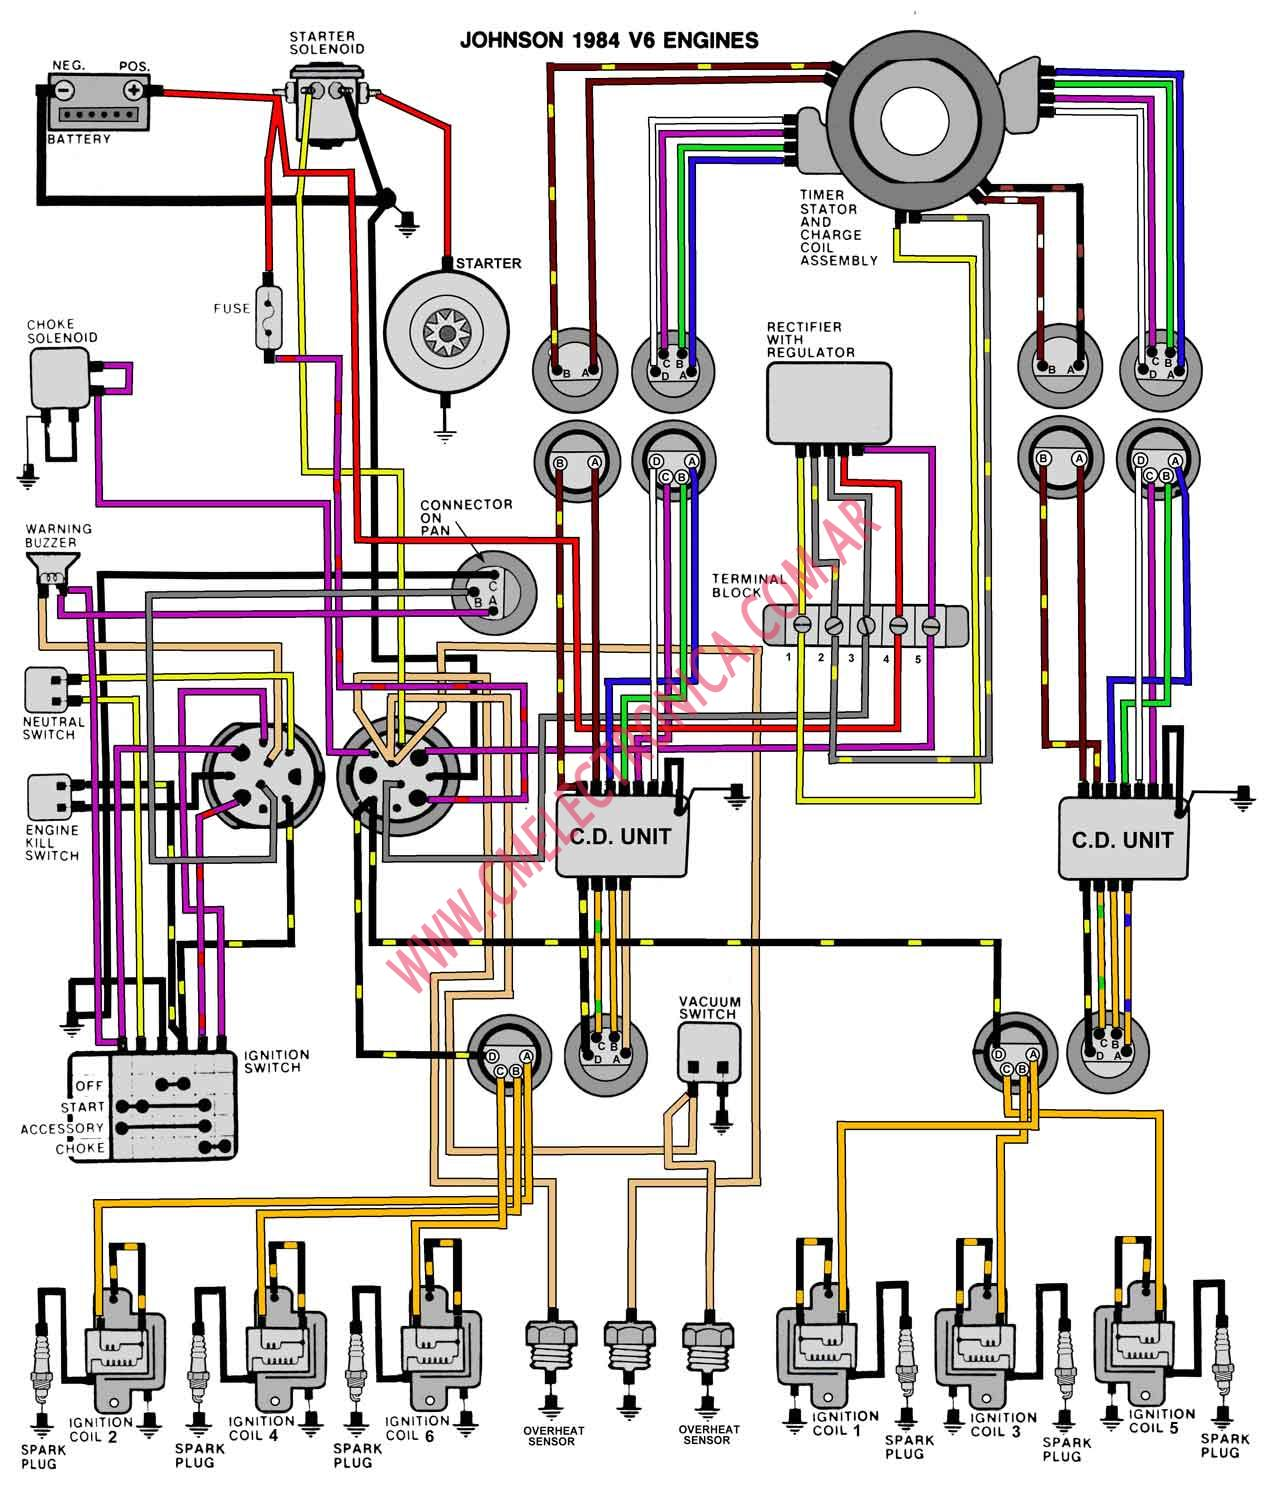 evinrude_johnson-84_v6  Hp Johnson Wiring Diagram on johnson evinrude ignition wiring diagrams, johnson outboard motor wiring diagram, johnson outboard tilt trim wiring diagram, evinrude 15 hp electric start wiring diagram, 70 hp evinrude outboard motor wiring diagram,